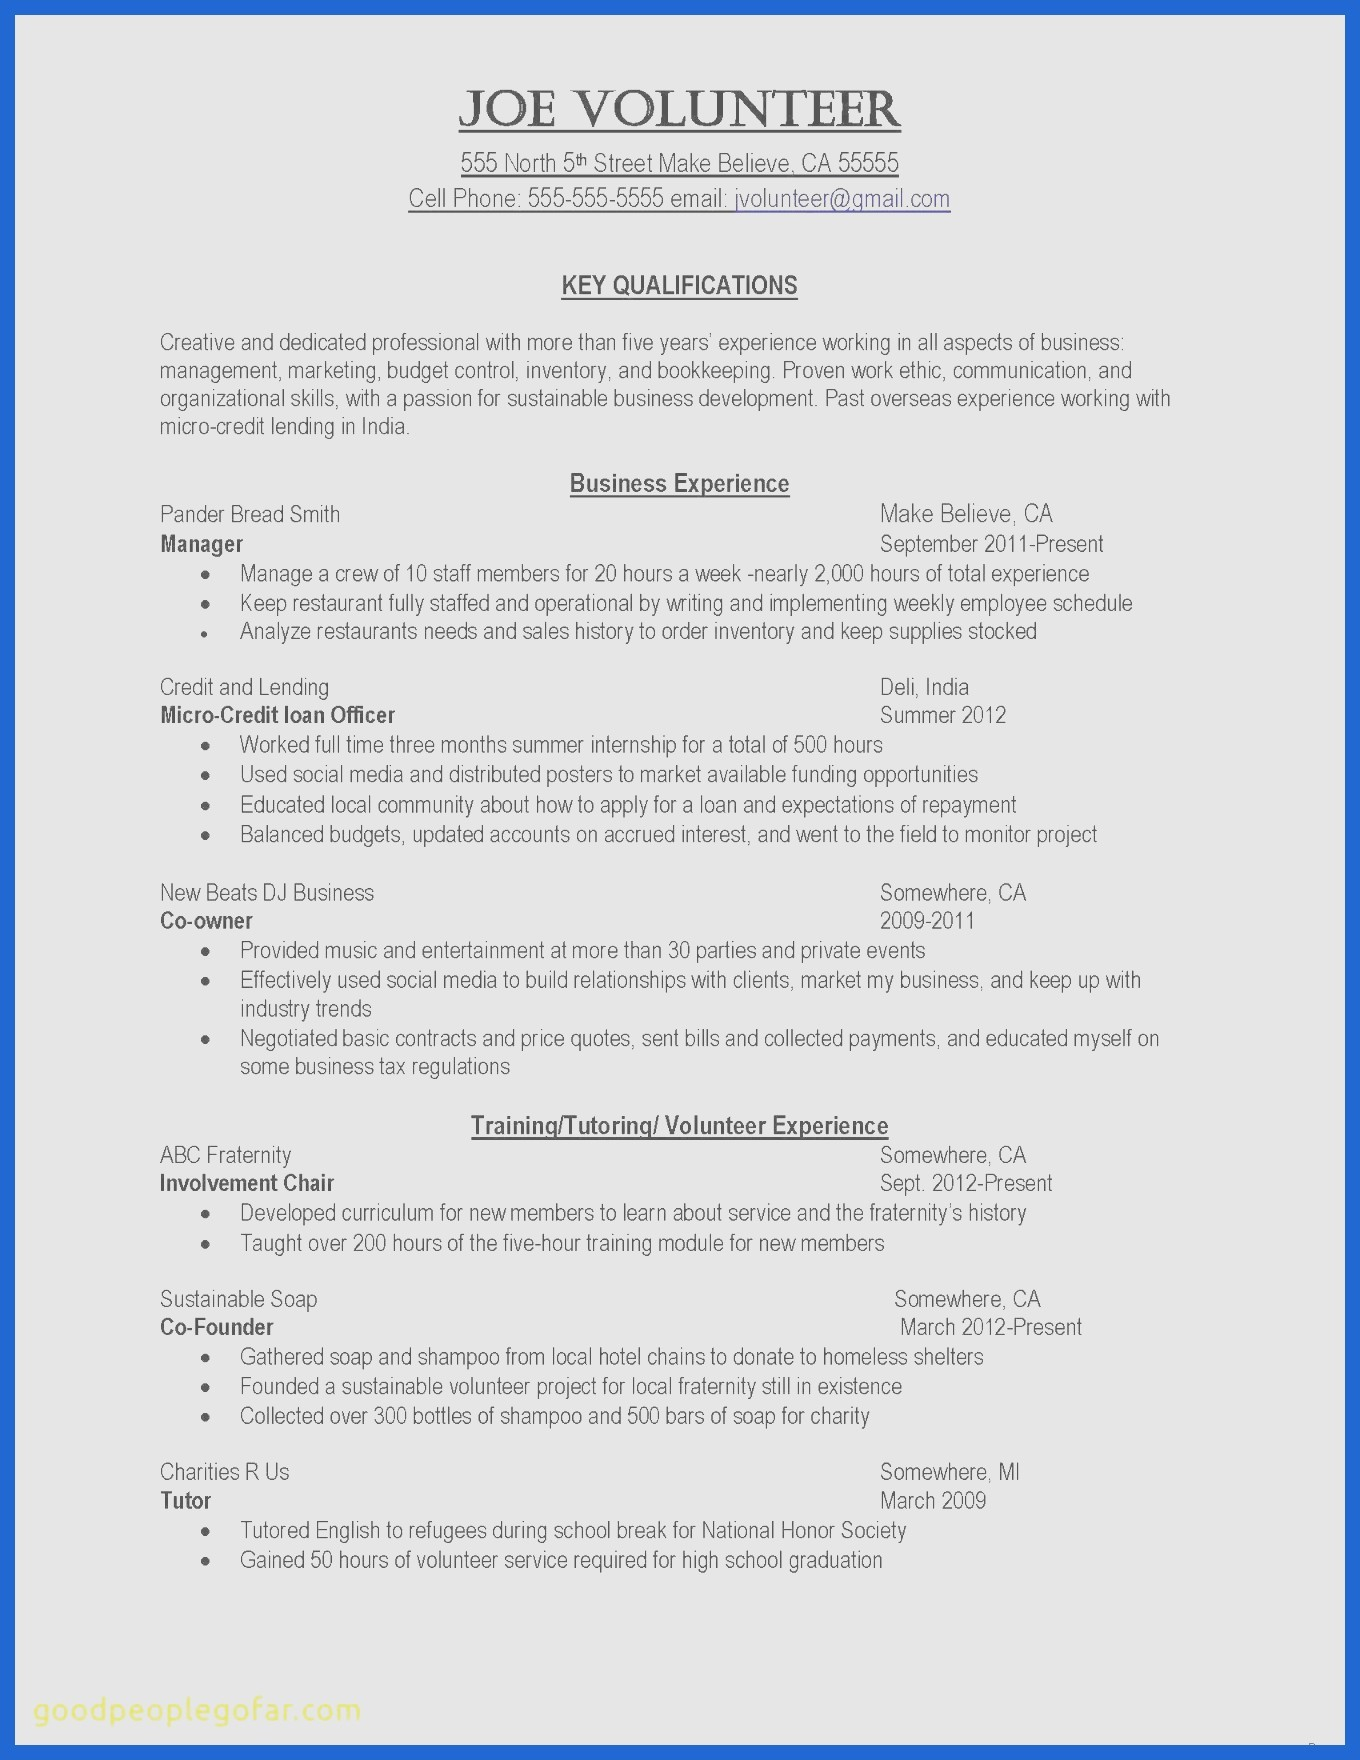 Academic Resume Template Latex - Cv Resume Template Latex Fresh Resume format for Volunteer Work